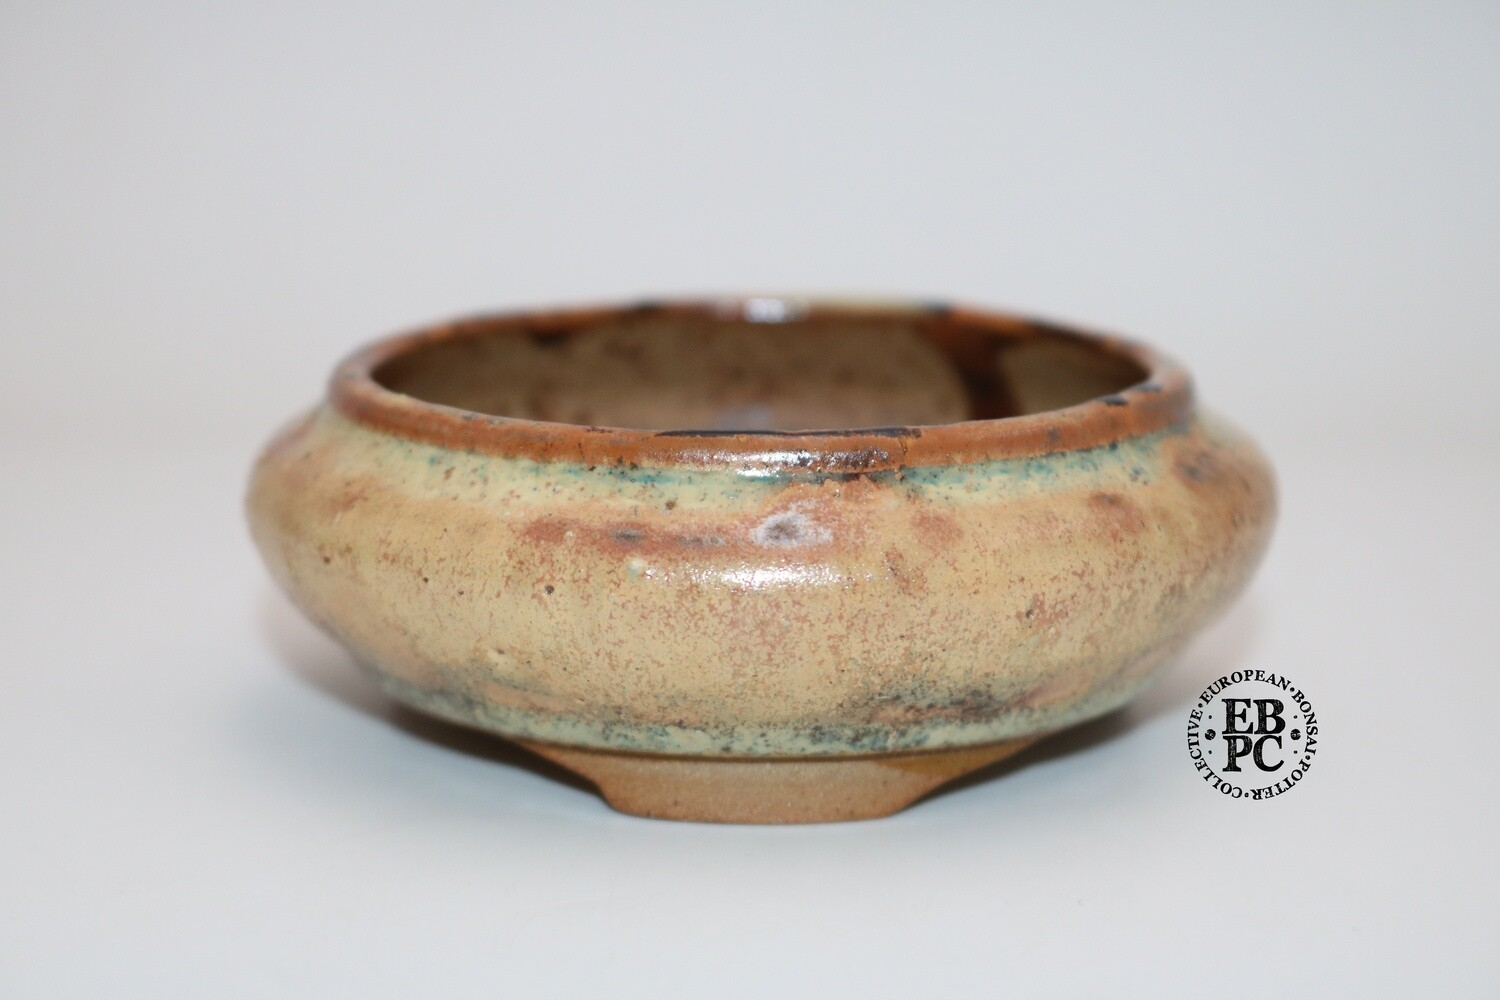 PAS Pots - 9.2cm; Round; Shohin / Mame / Accent pot; Hand Thrown; Superb Glaze; Aged-Looking glaze; Detailed foot ring; Patricia